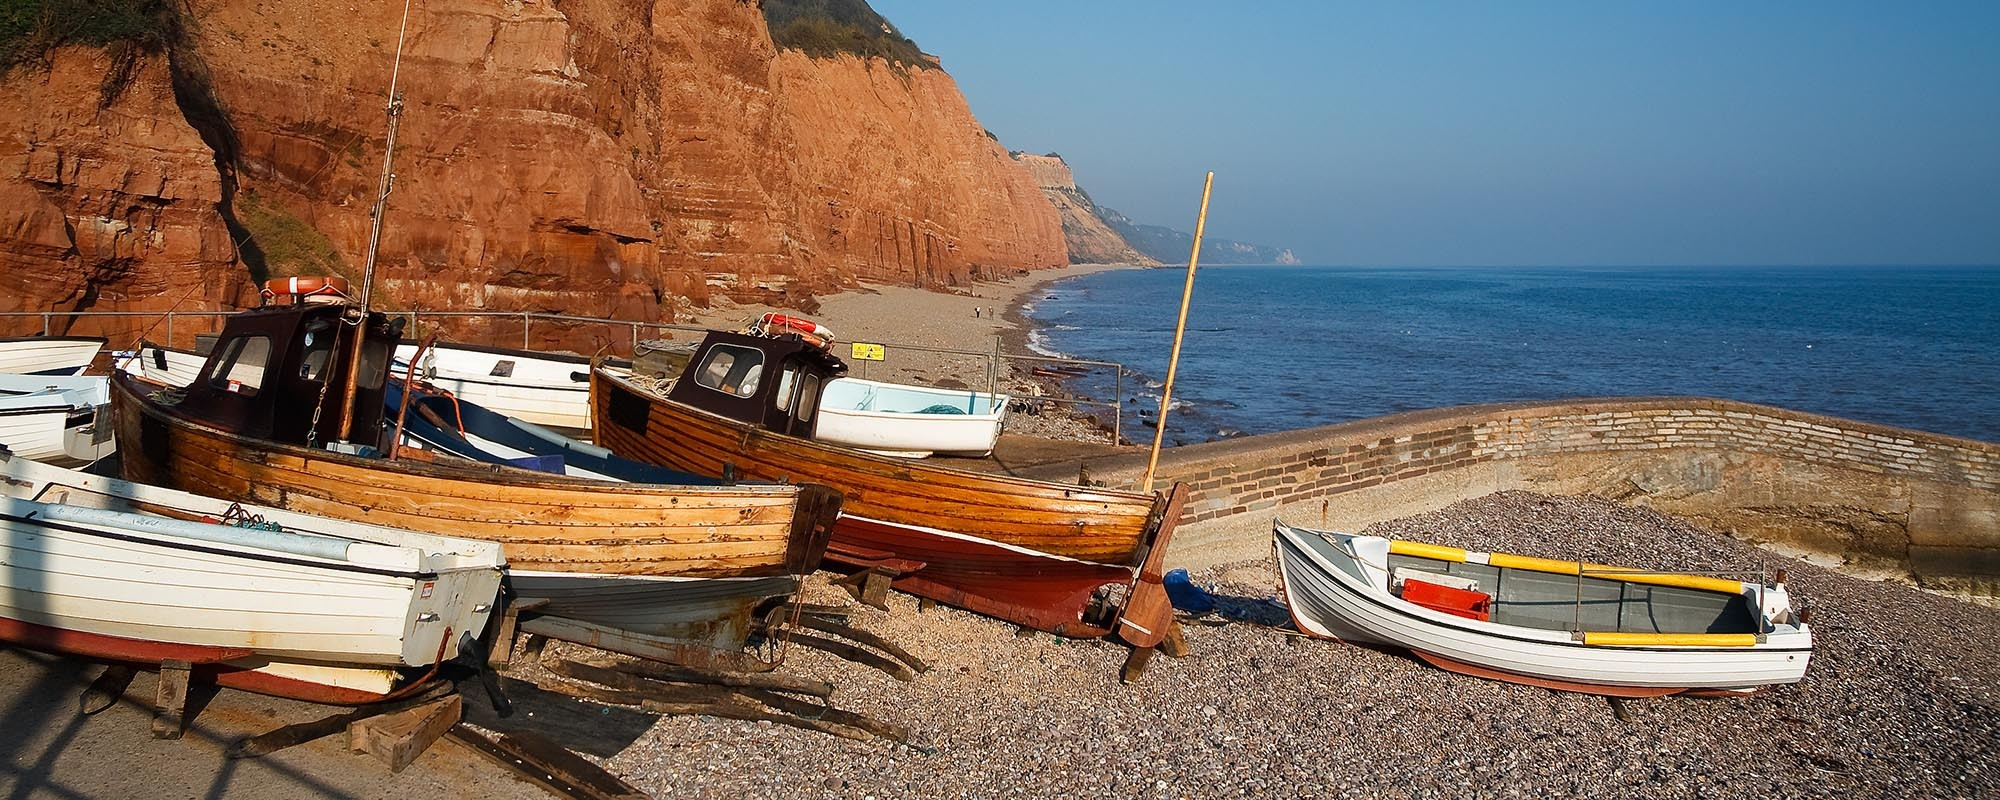 Things to Do in Sidmouth | Days out in Sidmouth | Royal Glen